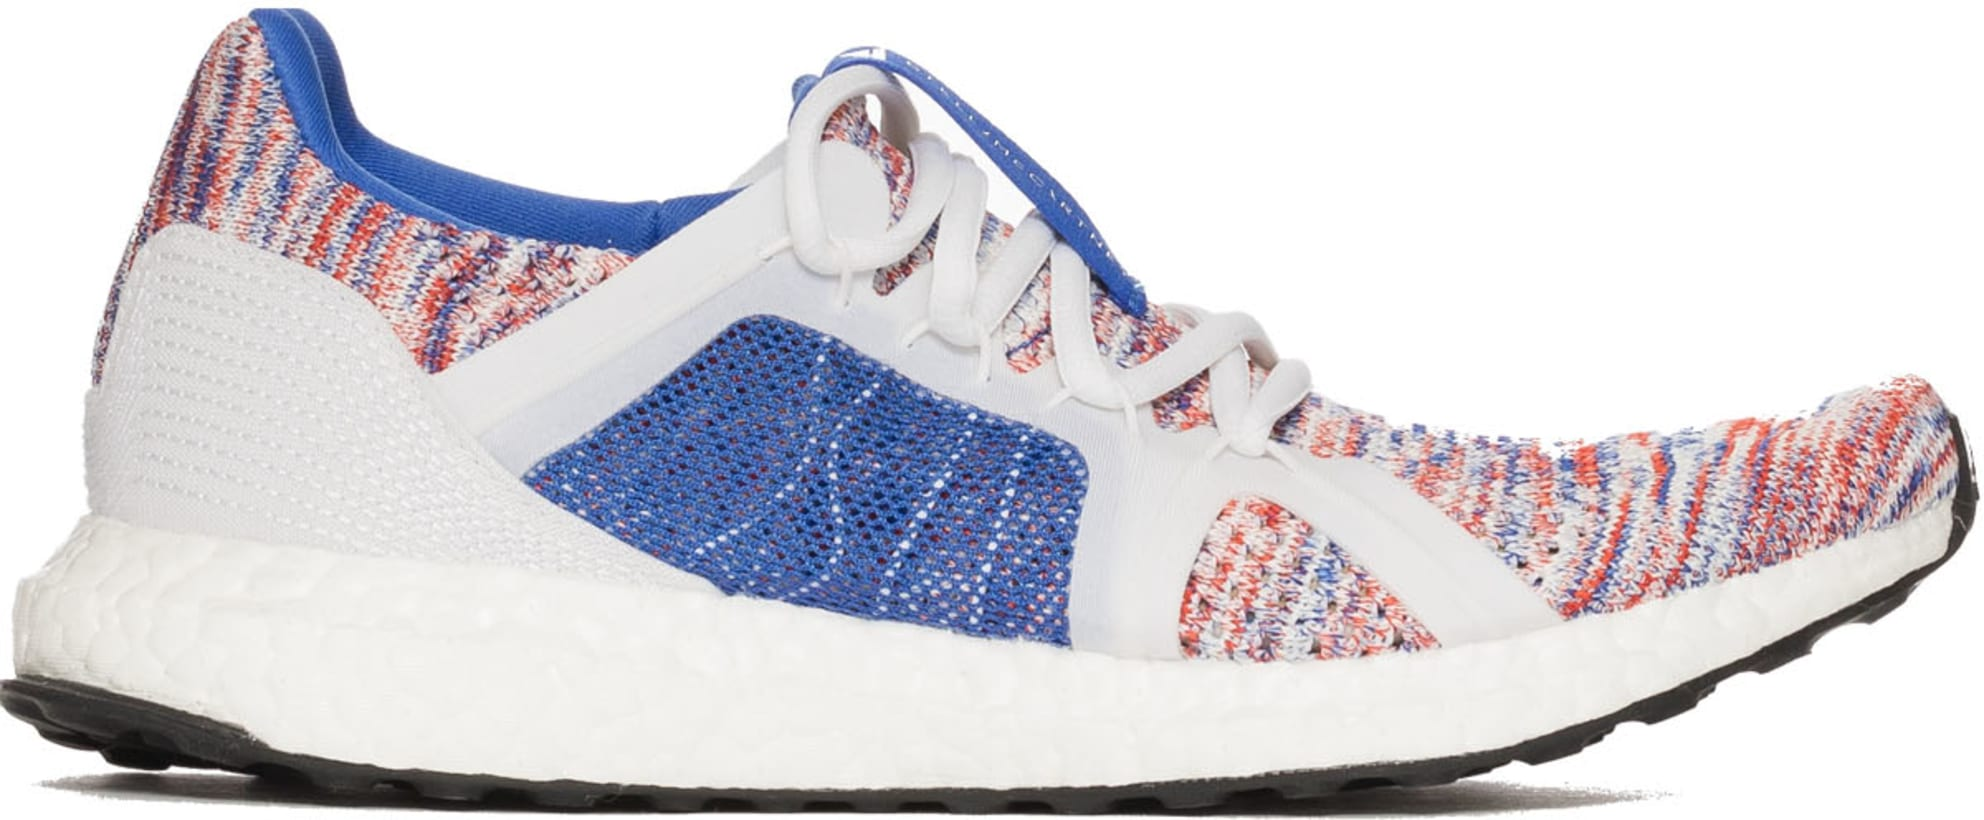 50e9a1bc7e9 adidas by Stella McCartney. UltraBoost Parley - Hi-Res Blue Core White Dark  Callisto